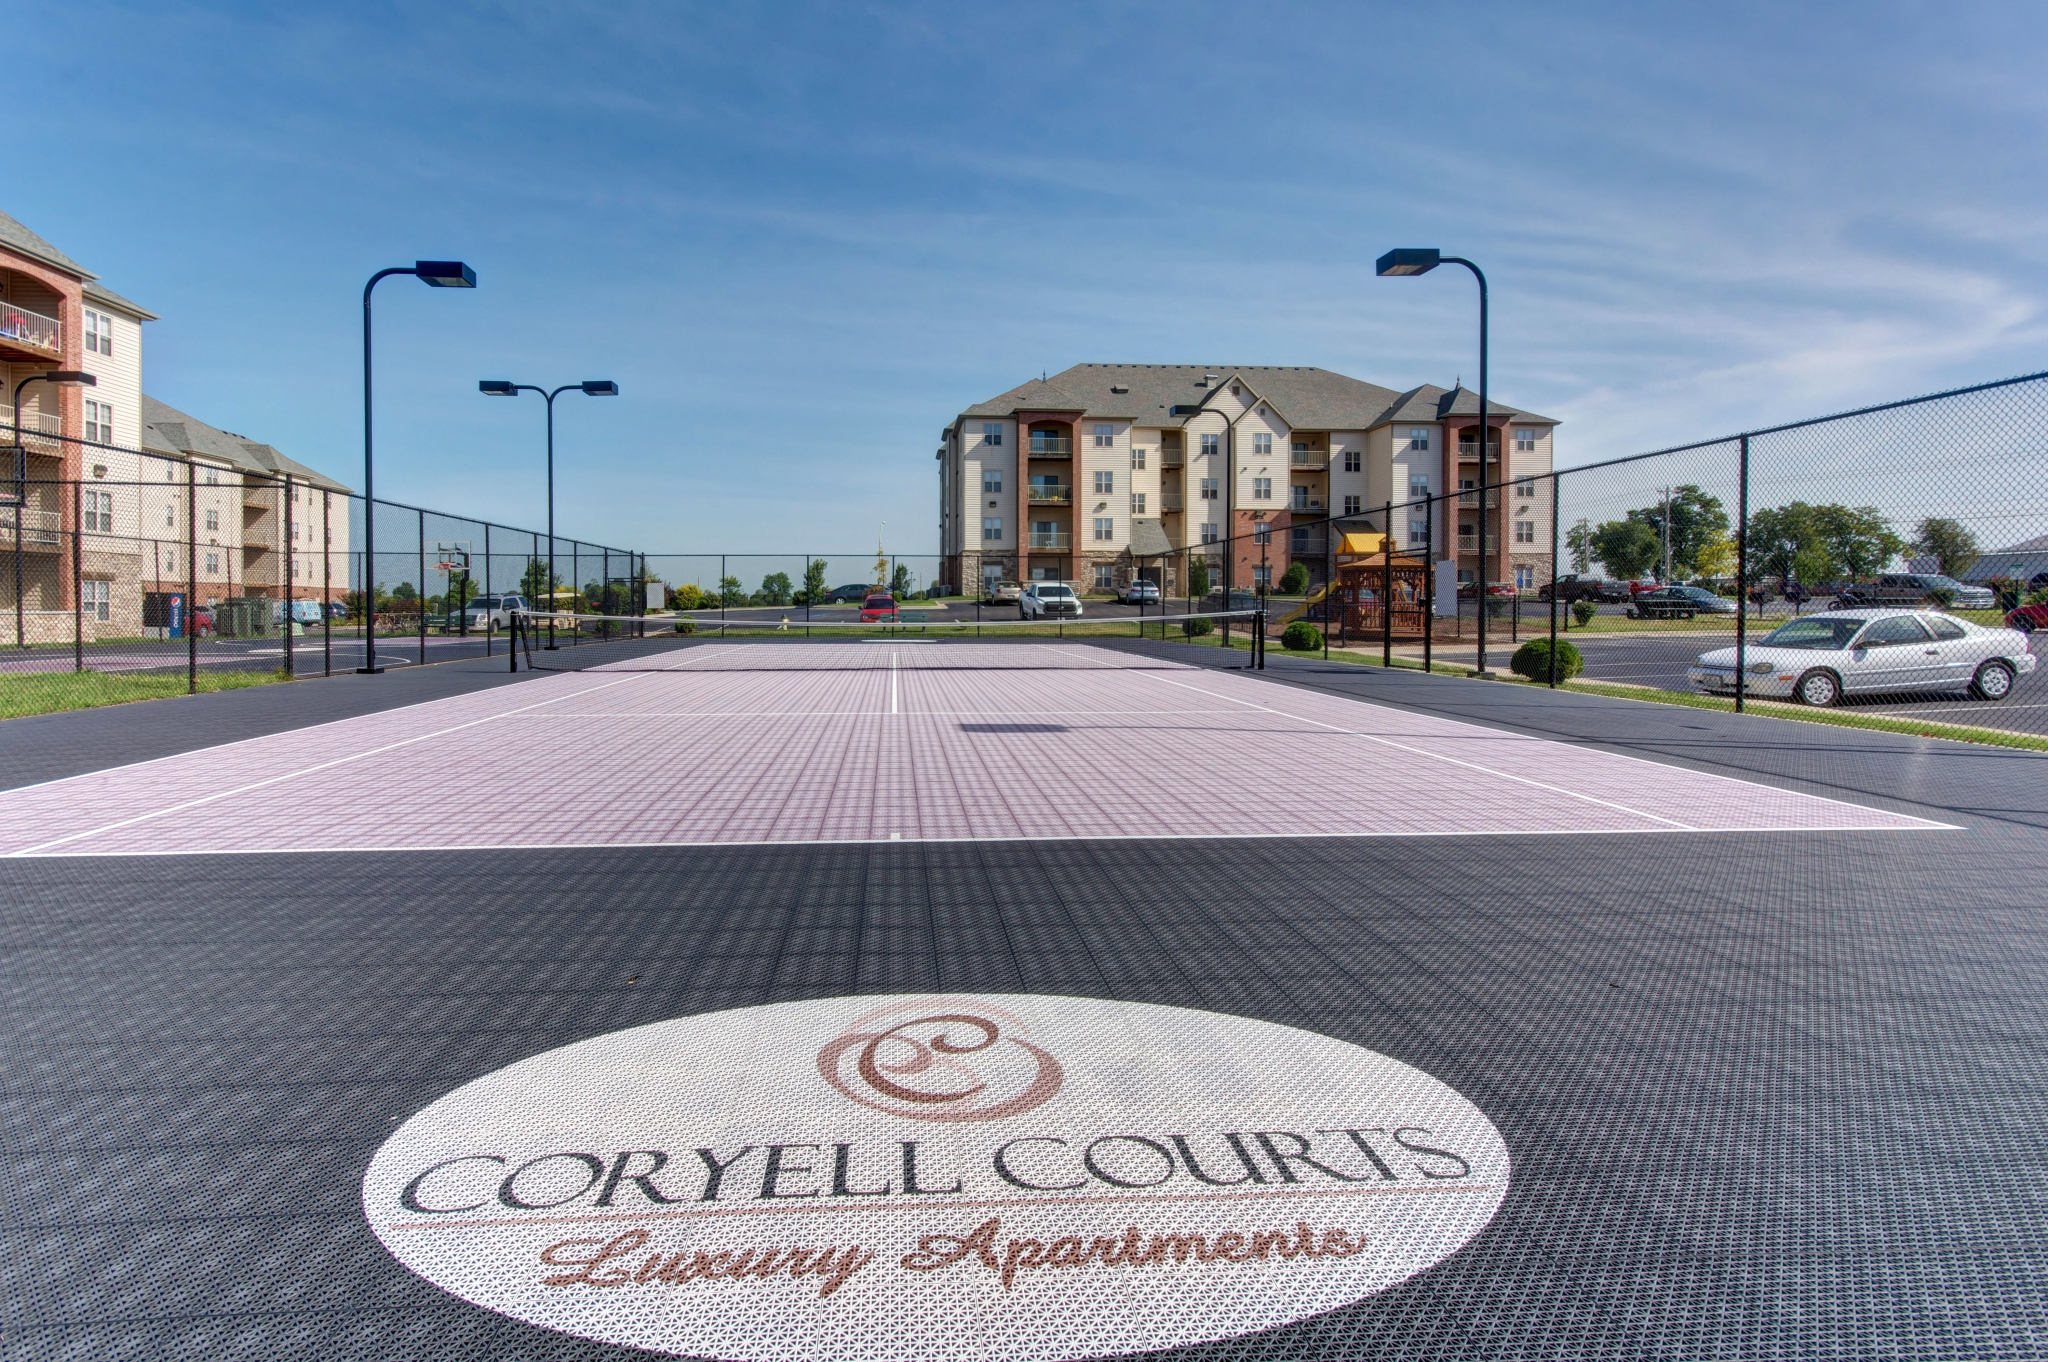 Coryell Courts Apartments amenity tennis court overlooking the exterior apartment building